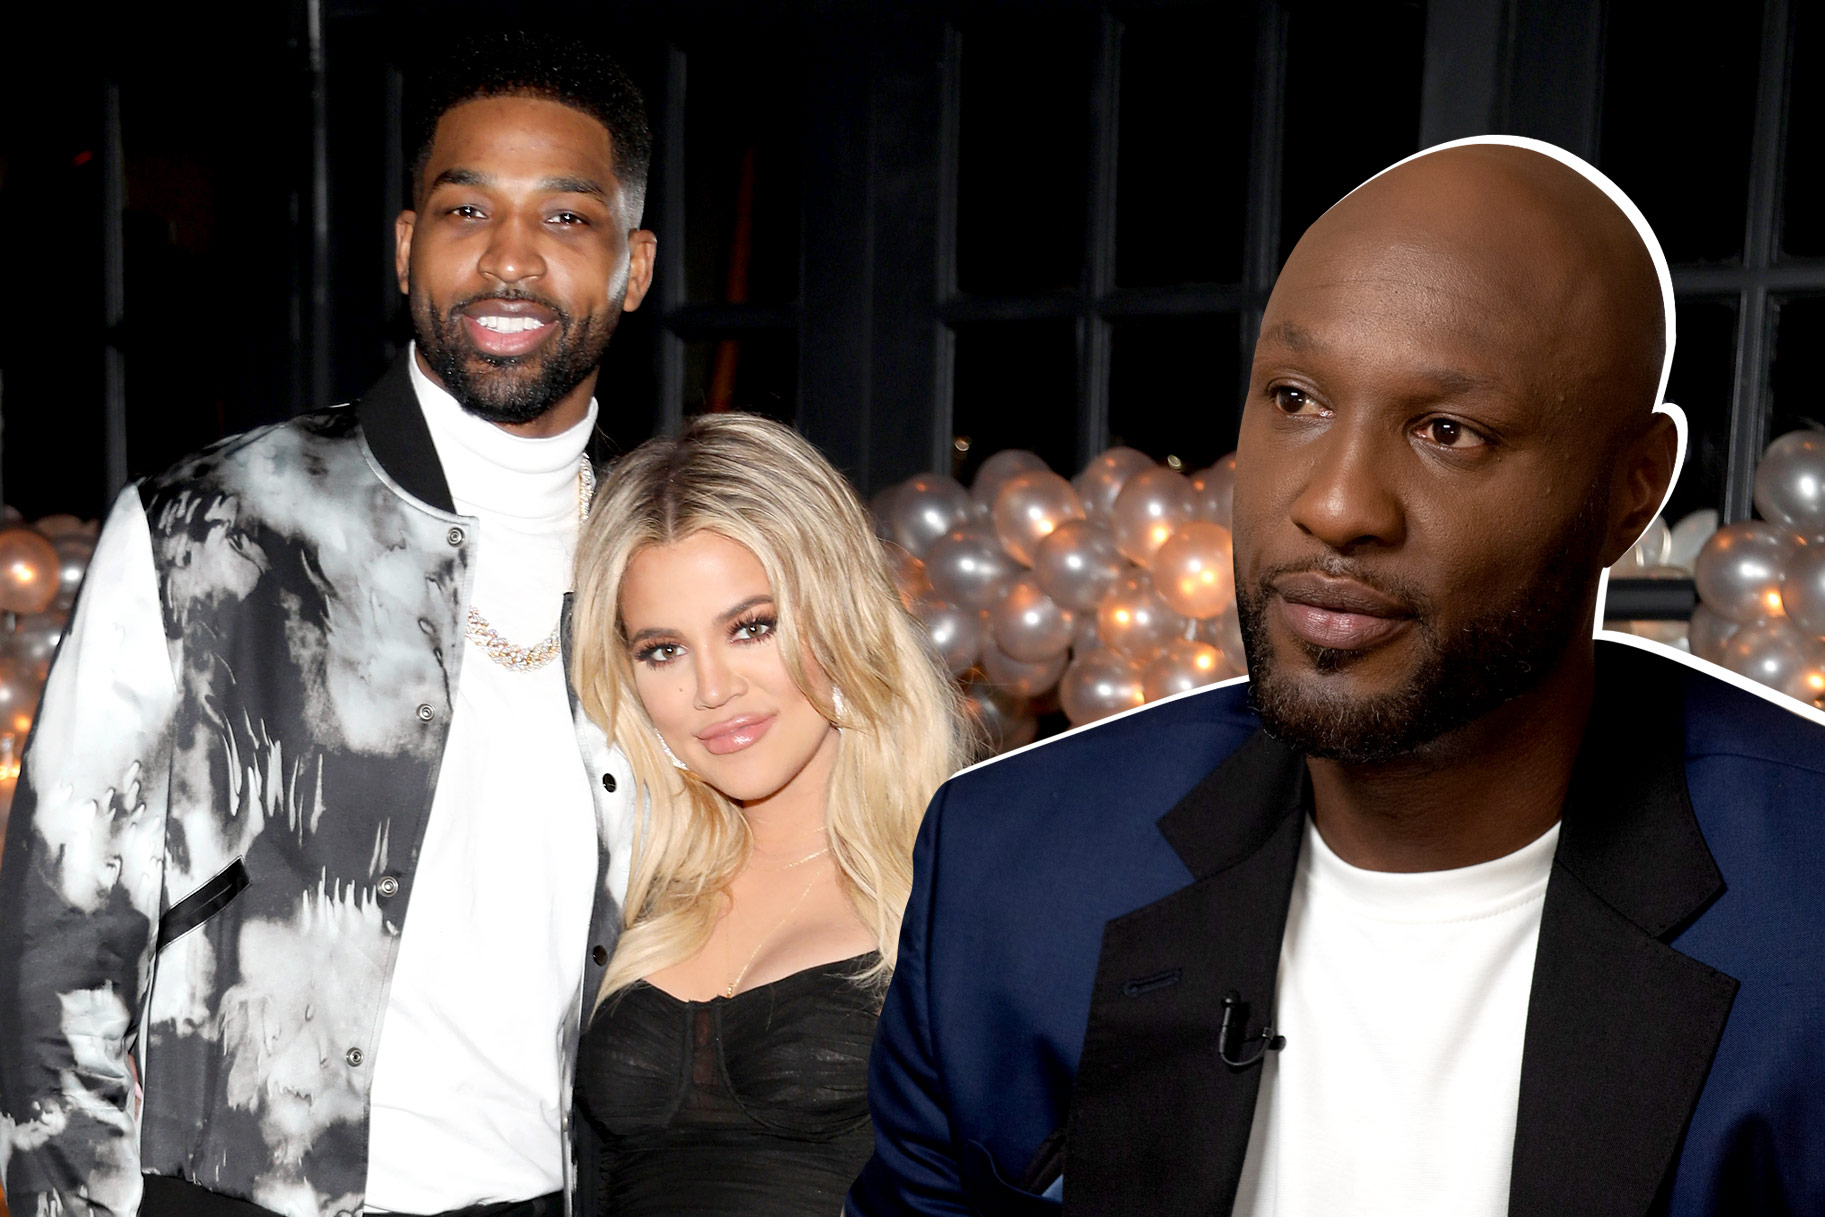 kuwtk-lamar-odom-wishes-khloe-kardashian-nothing-but-happiness-if-she-and-tristan-thompson-are-truly-dating-again